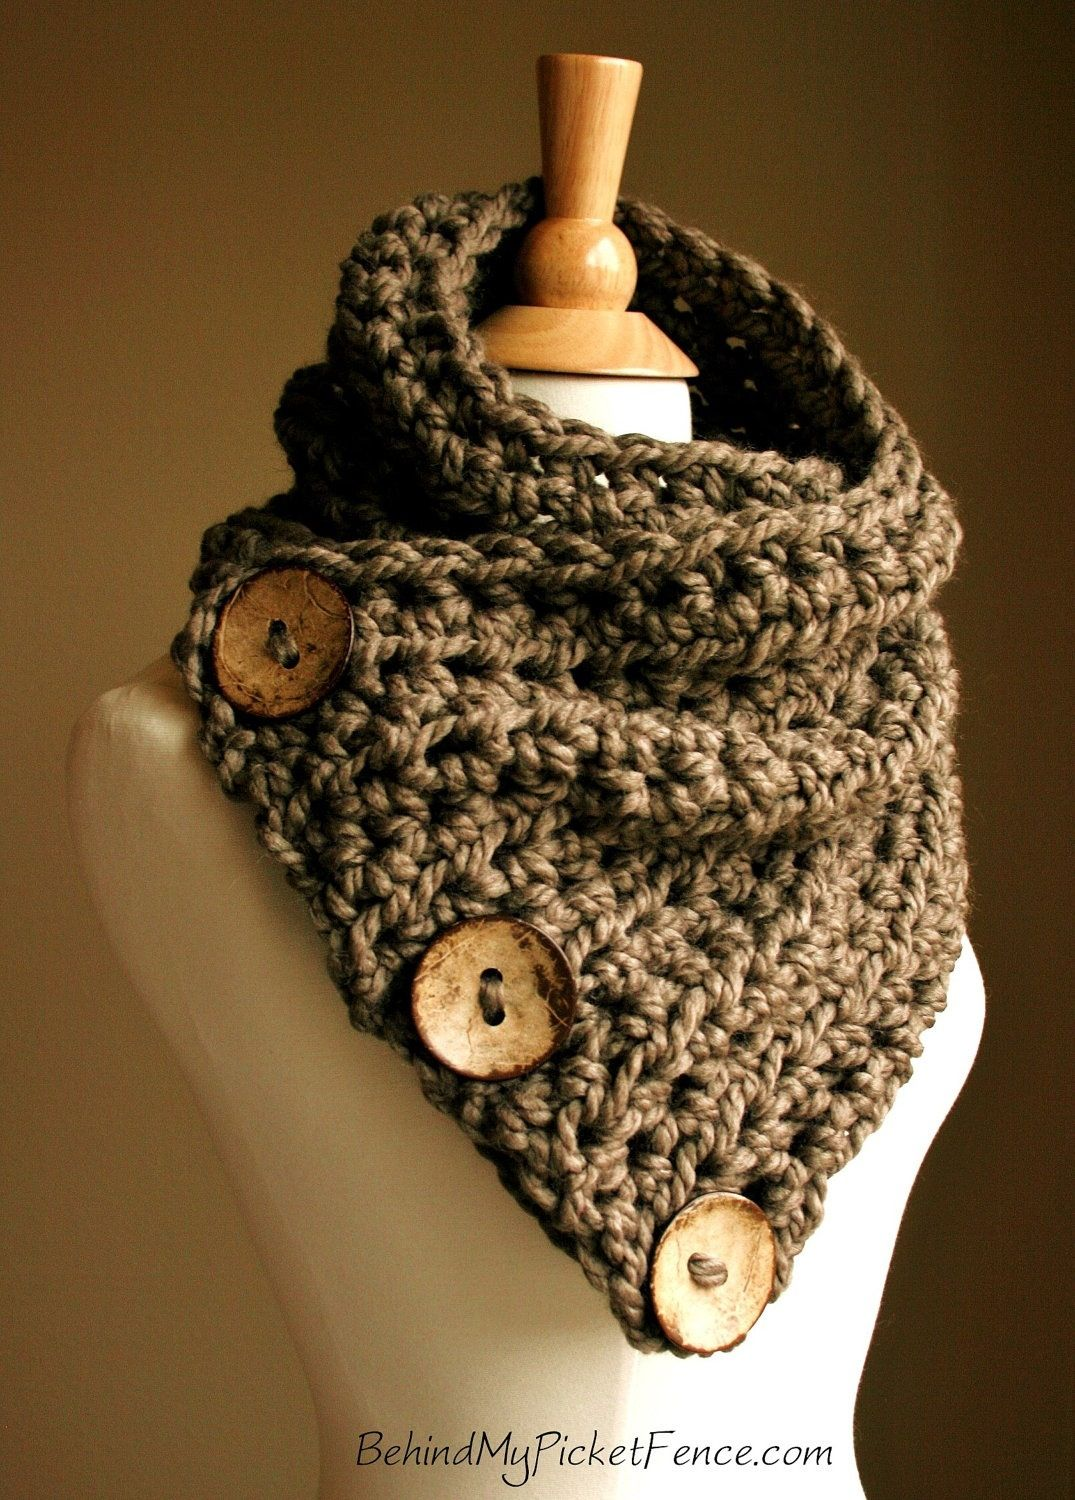 In love with scarfs.